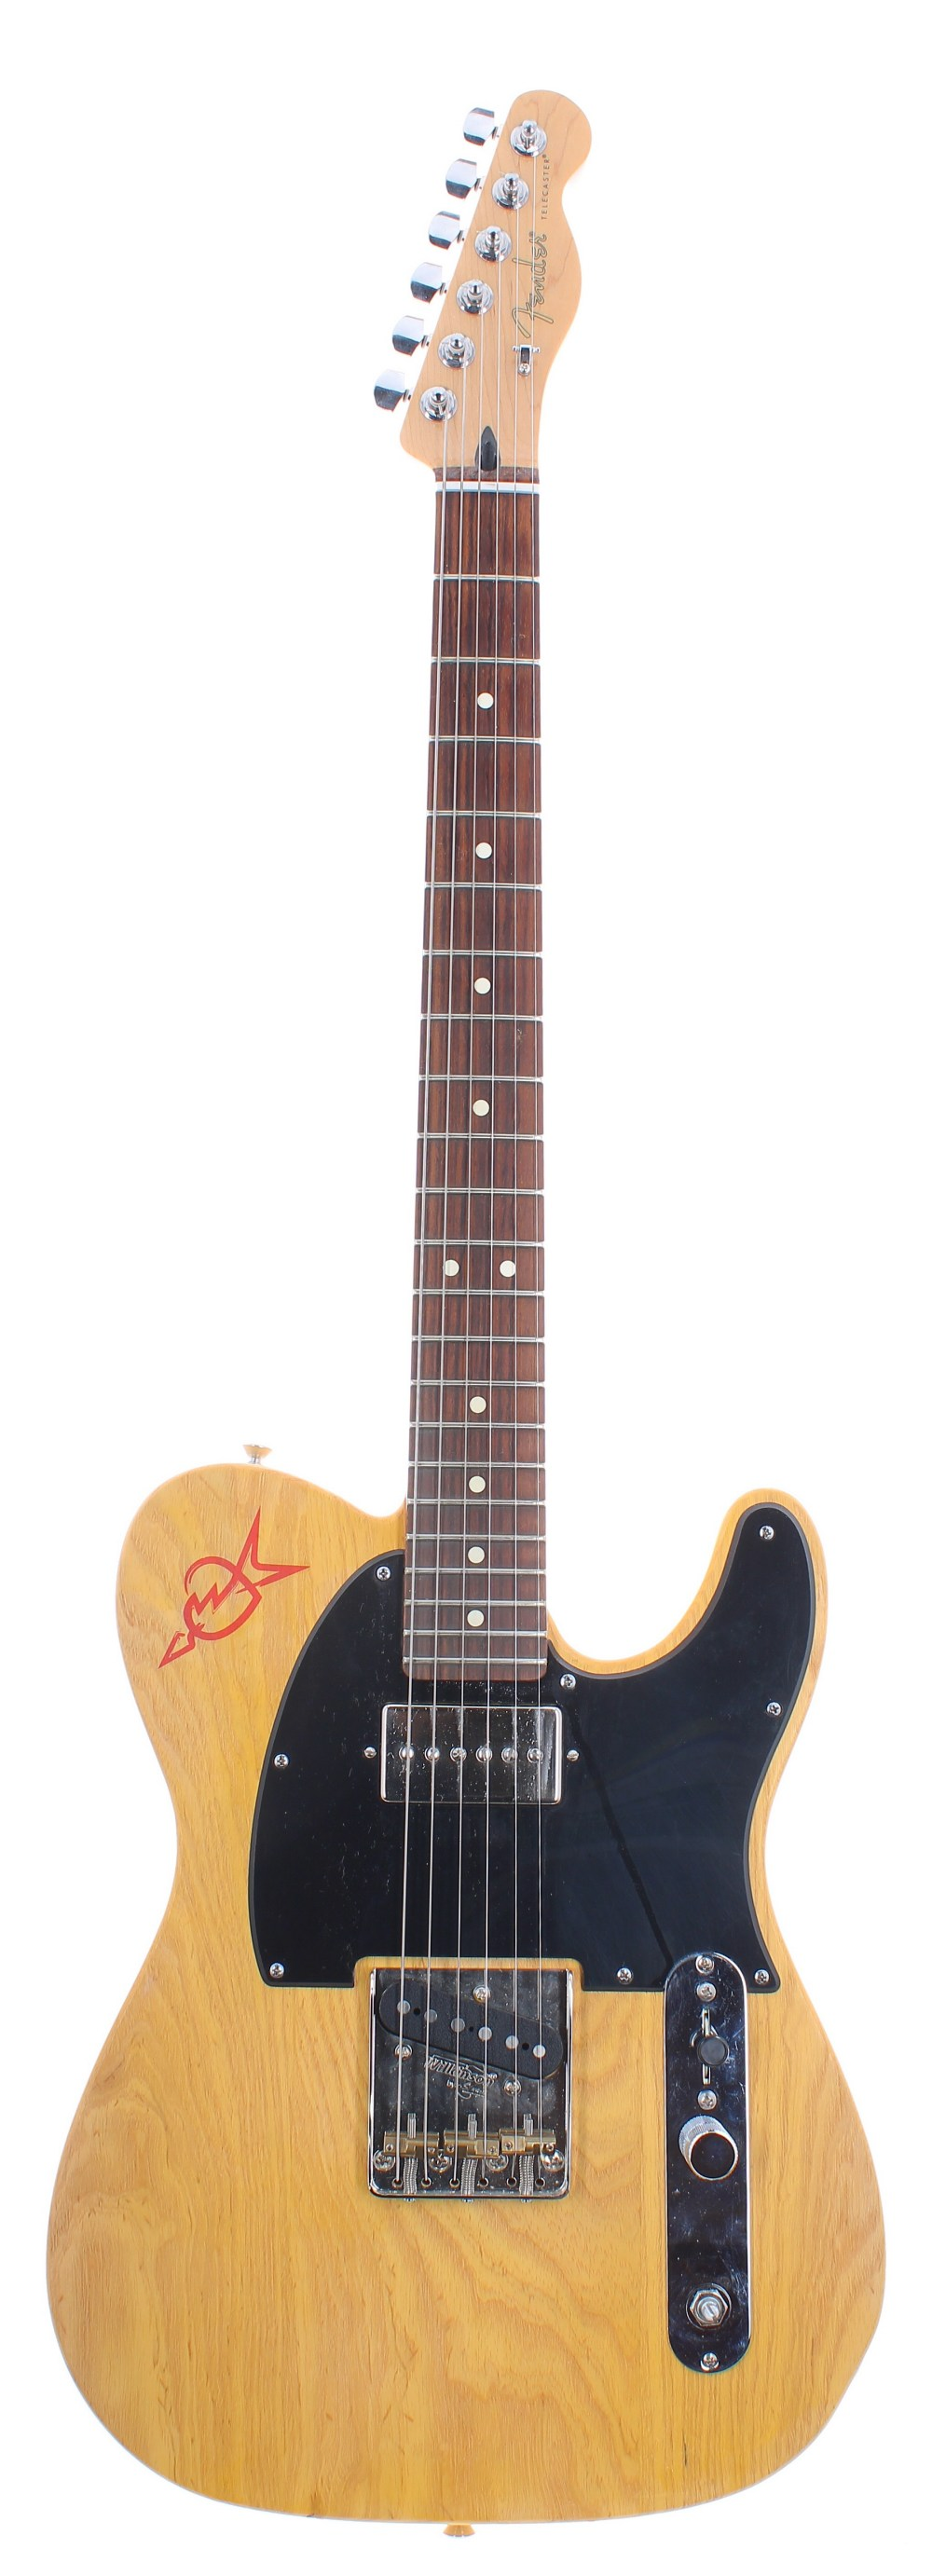 Custom build T Type electric guitar comprising a G & B Guitar and Bass T Type body, a 2015 Fender